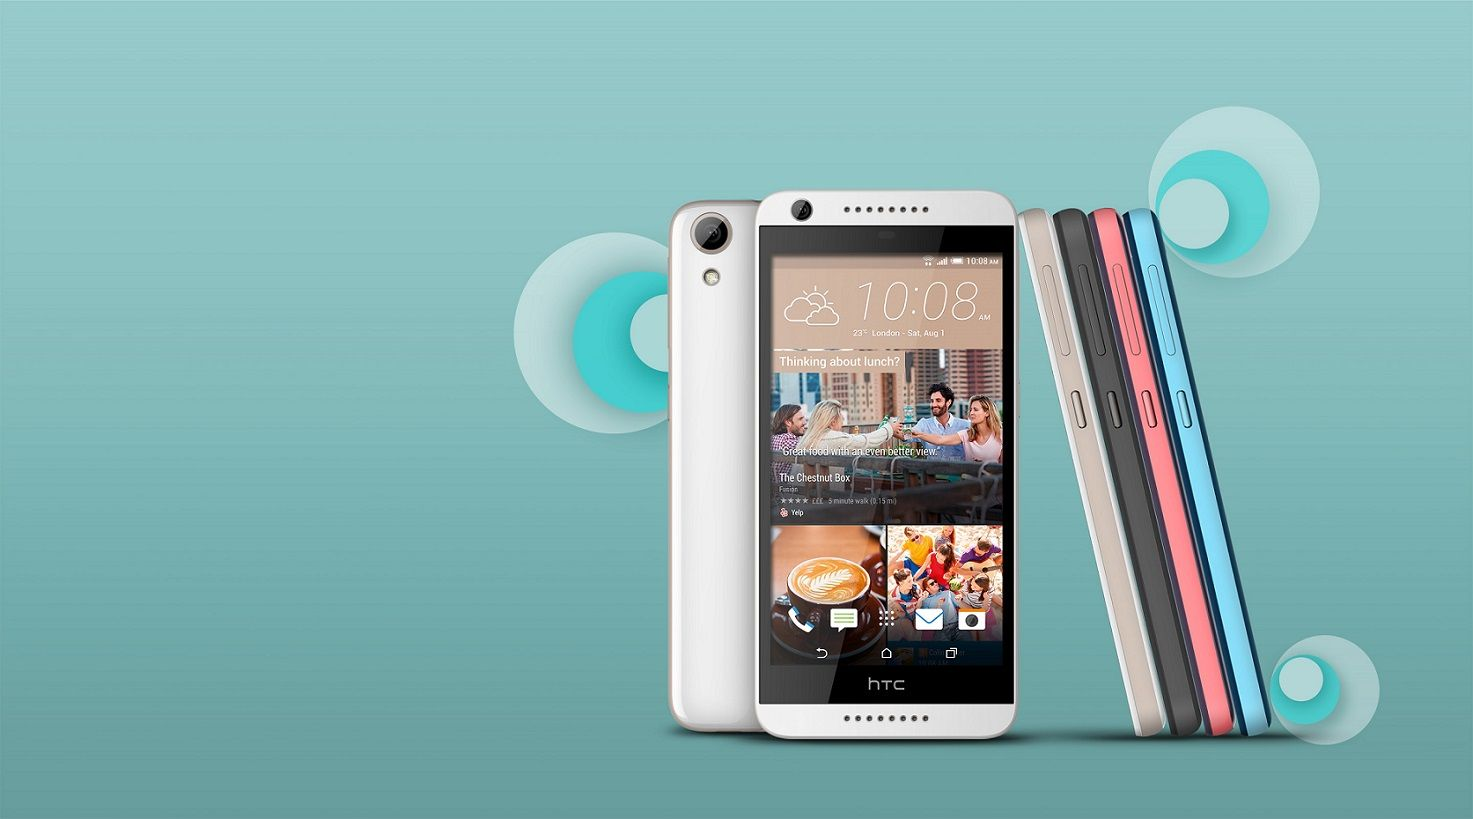 Introducing HTC Desire 626